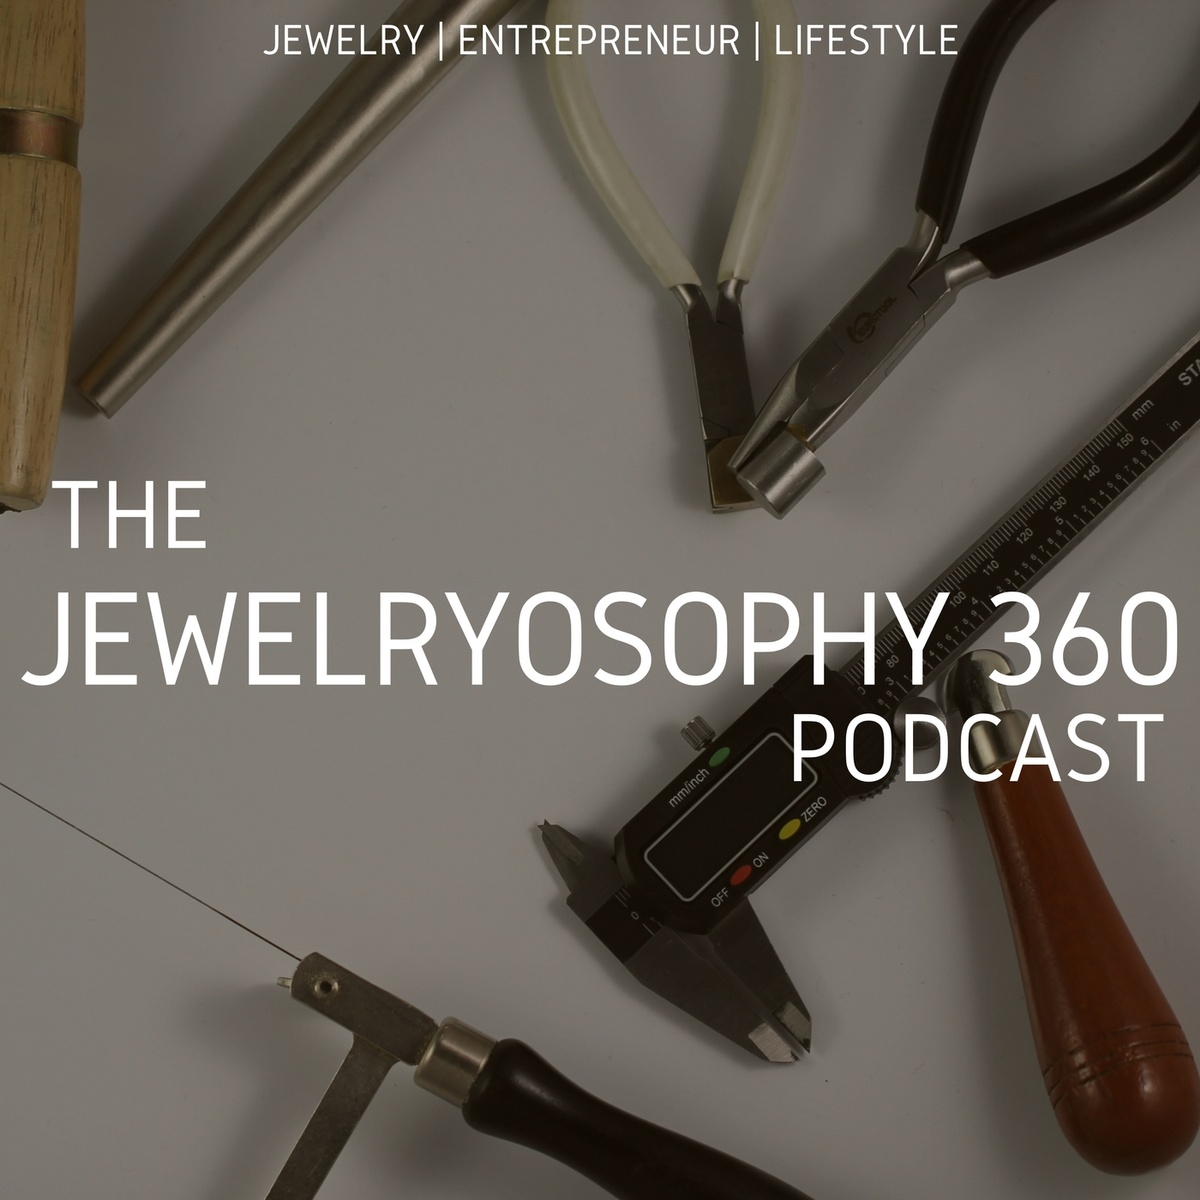 The Jewelryosophy 360 Podcast